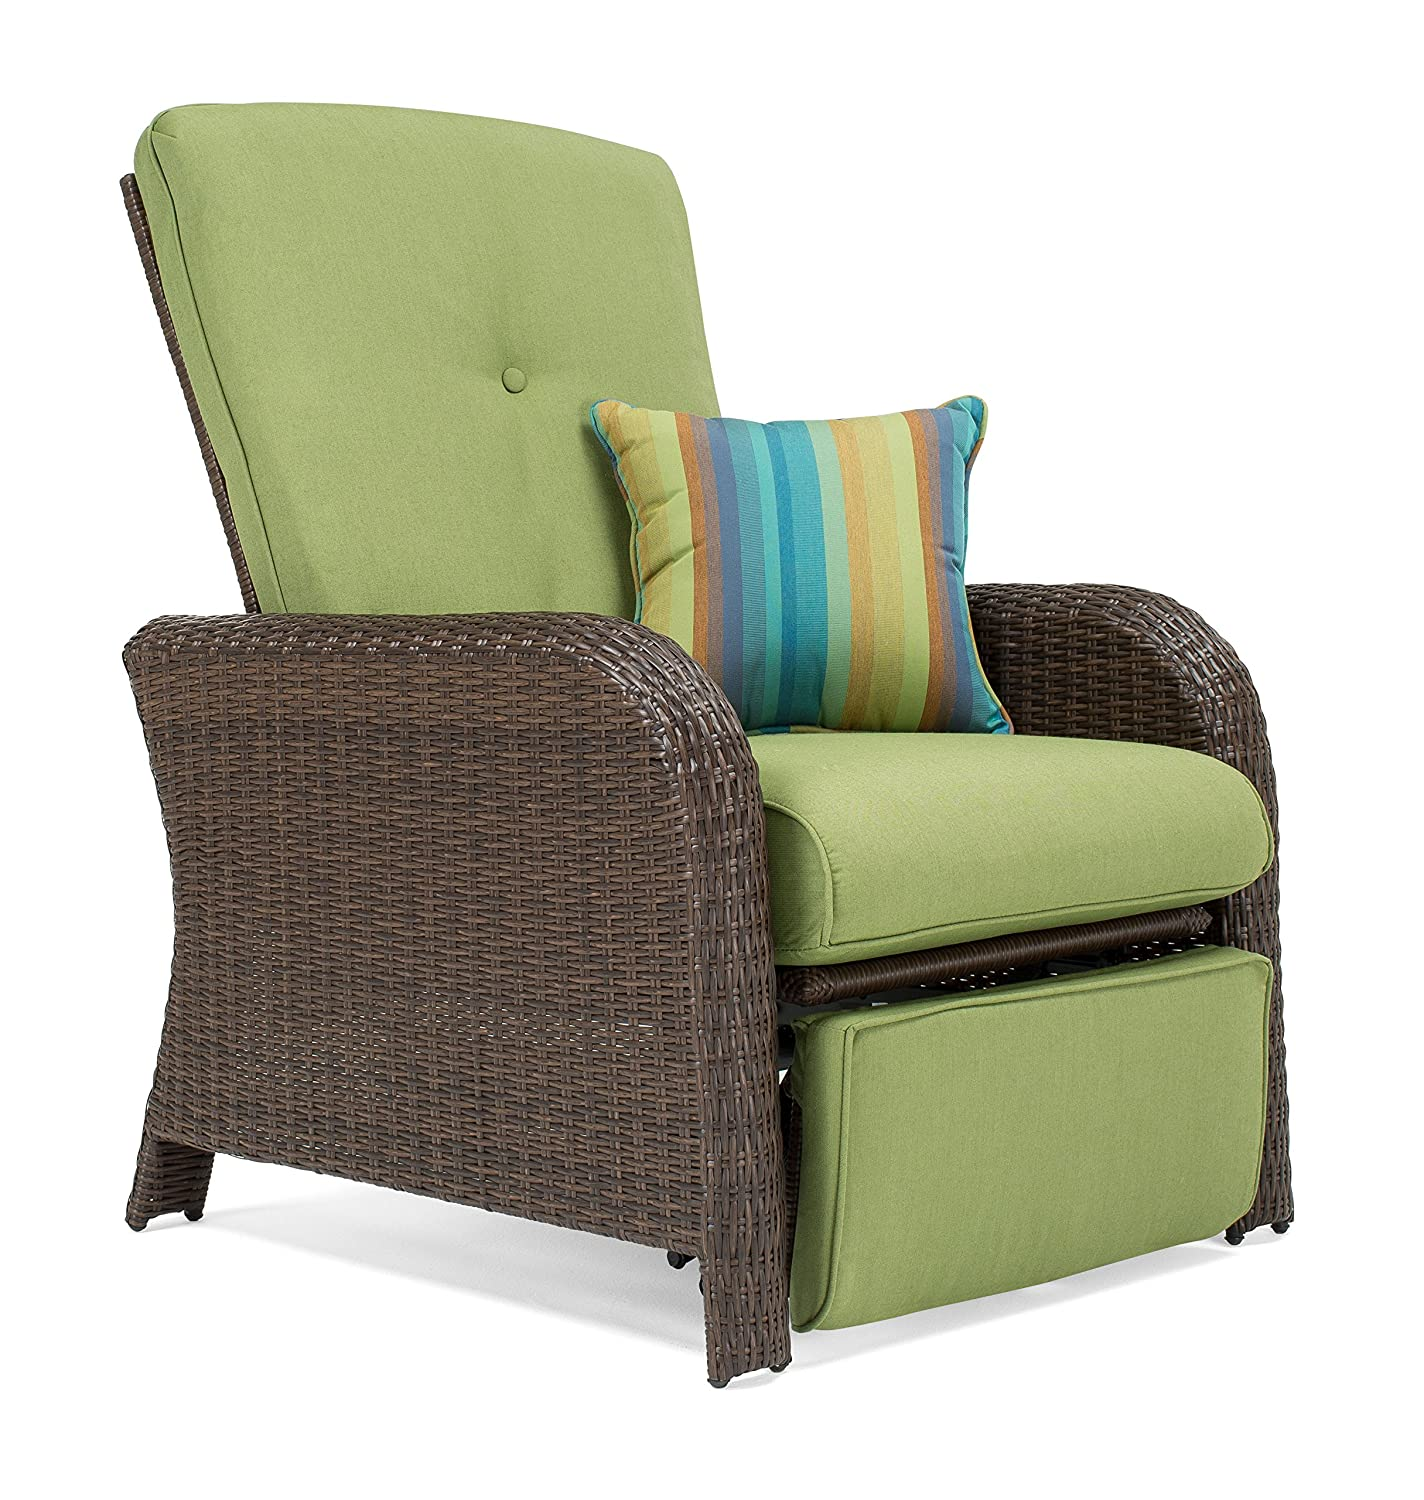 amazon com la z boy outdoor sawyer resin wicker patio furniture